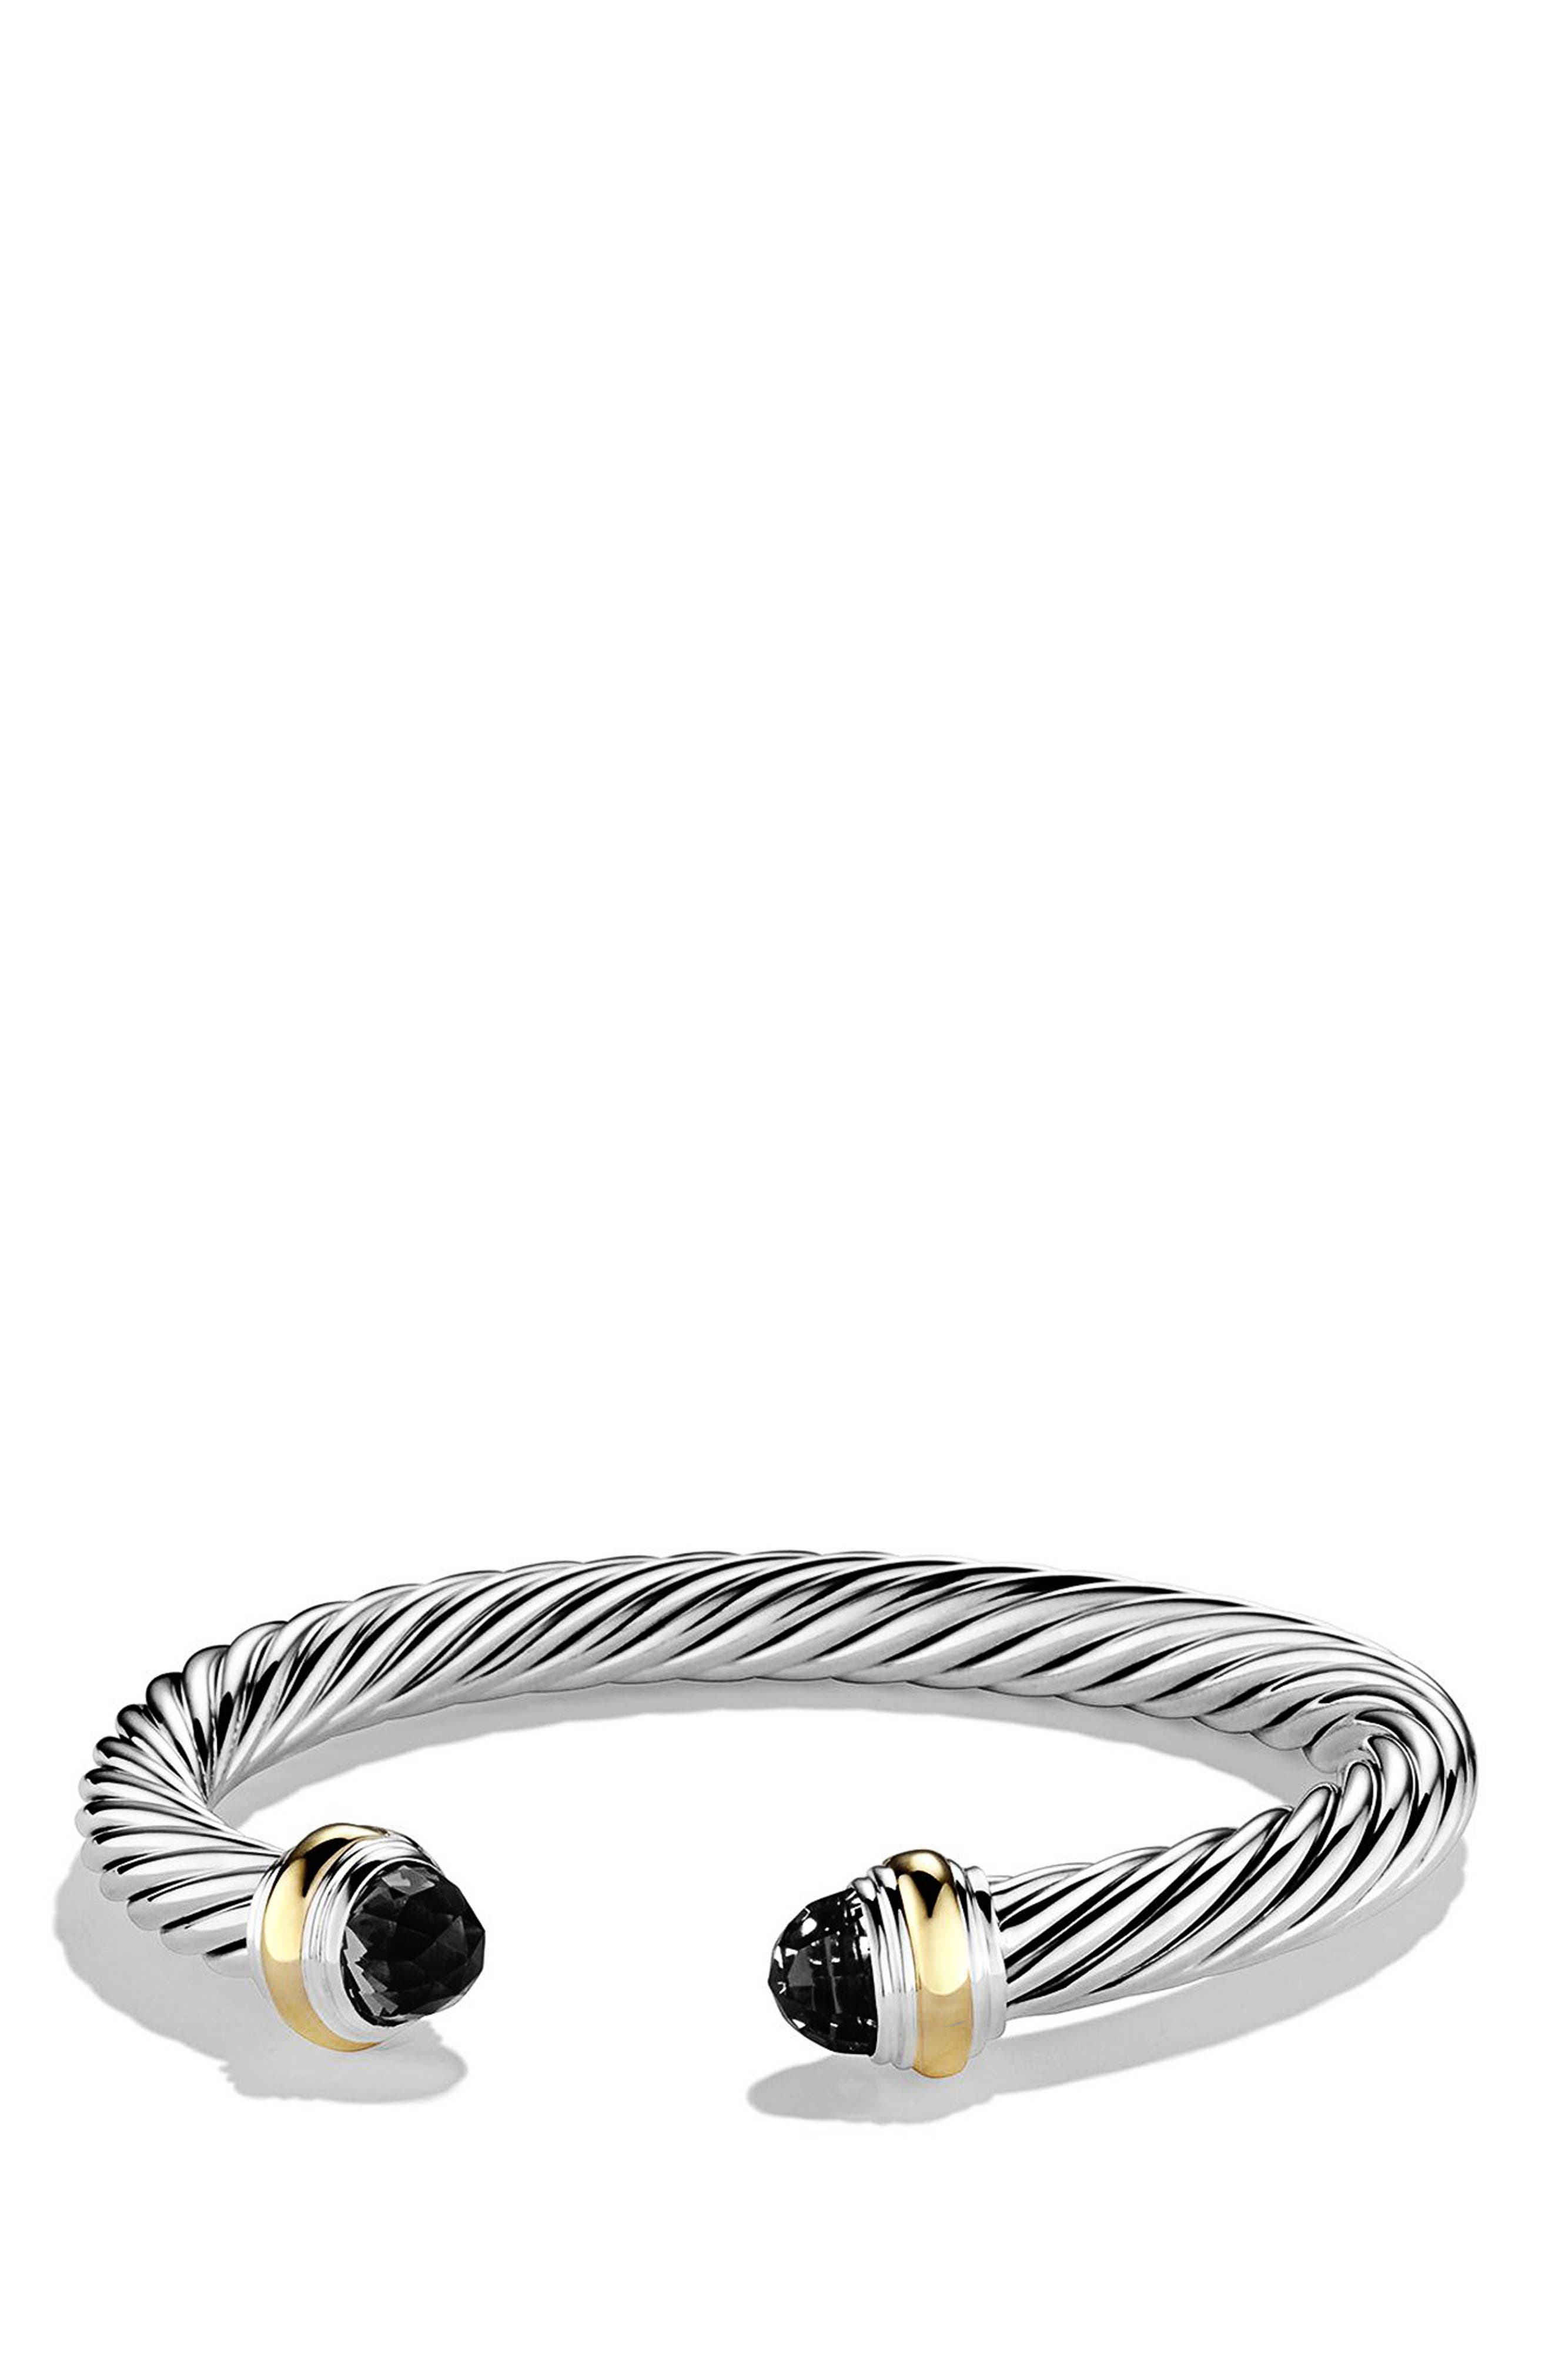 DAVID YURMAN Cable Classics Bracelet with Semiprecious Stones & 14K Gold, 7mm, Main, color, BLACK ONYX